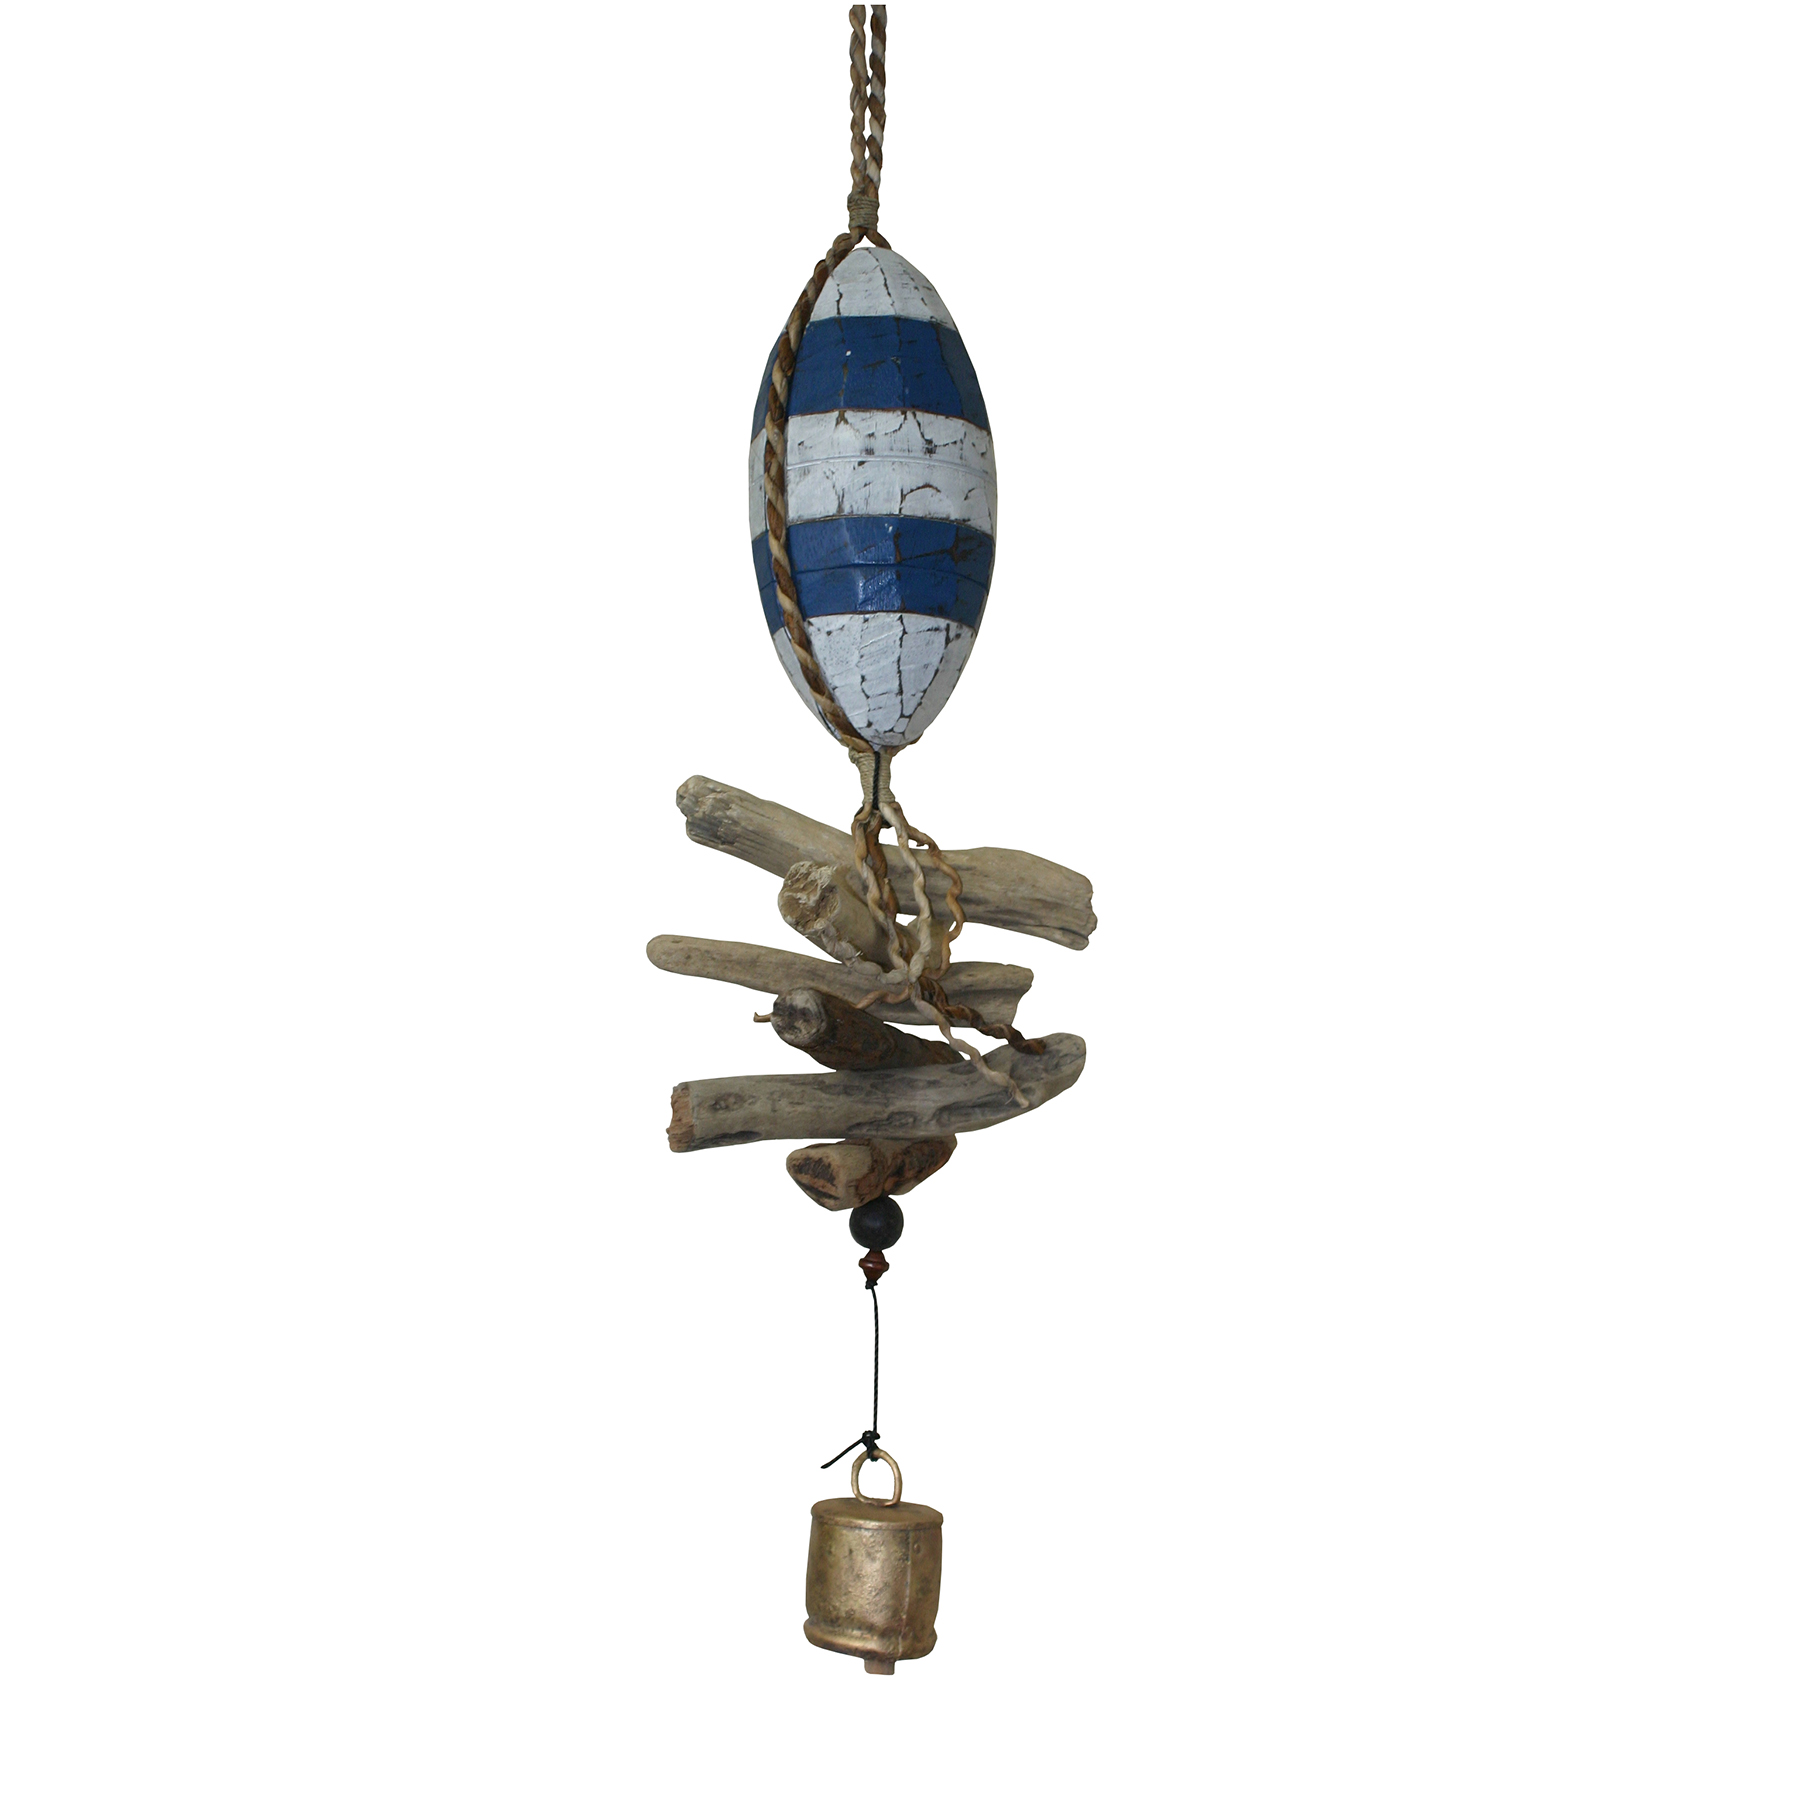 "600 - Wooden 10"" Fish Float Cohasset Bell - Assorted Colors"